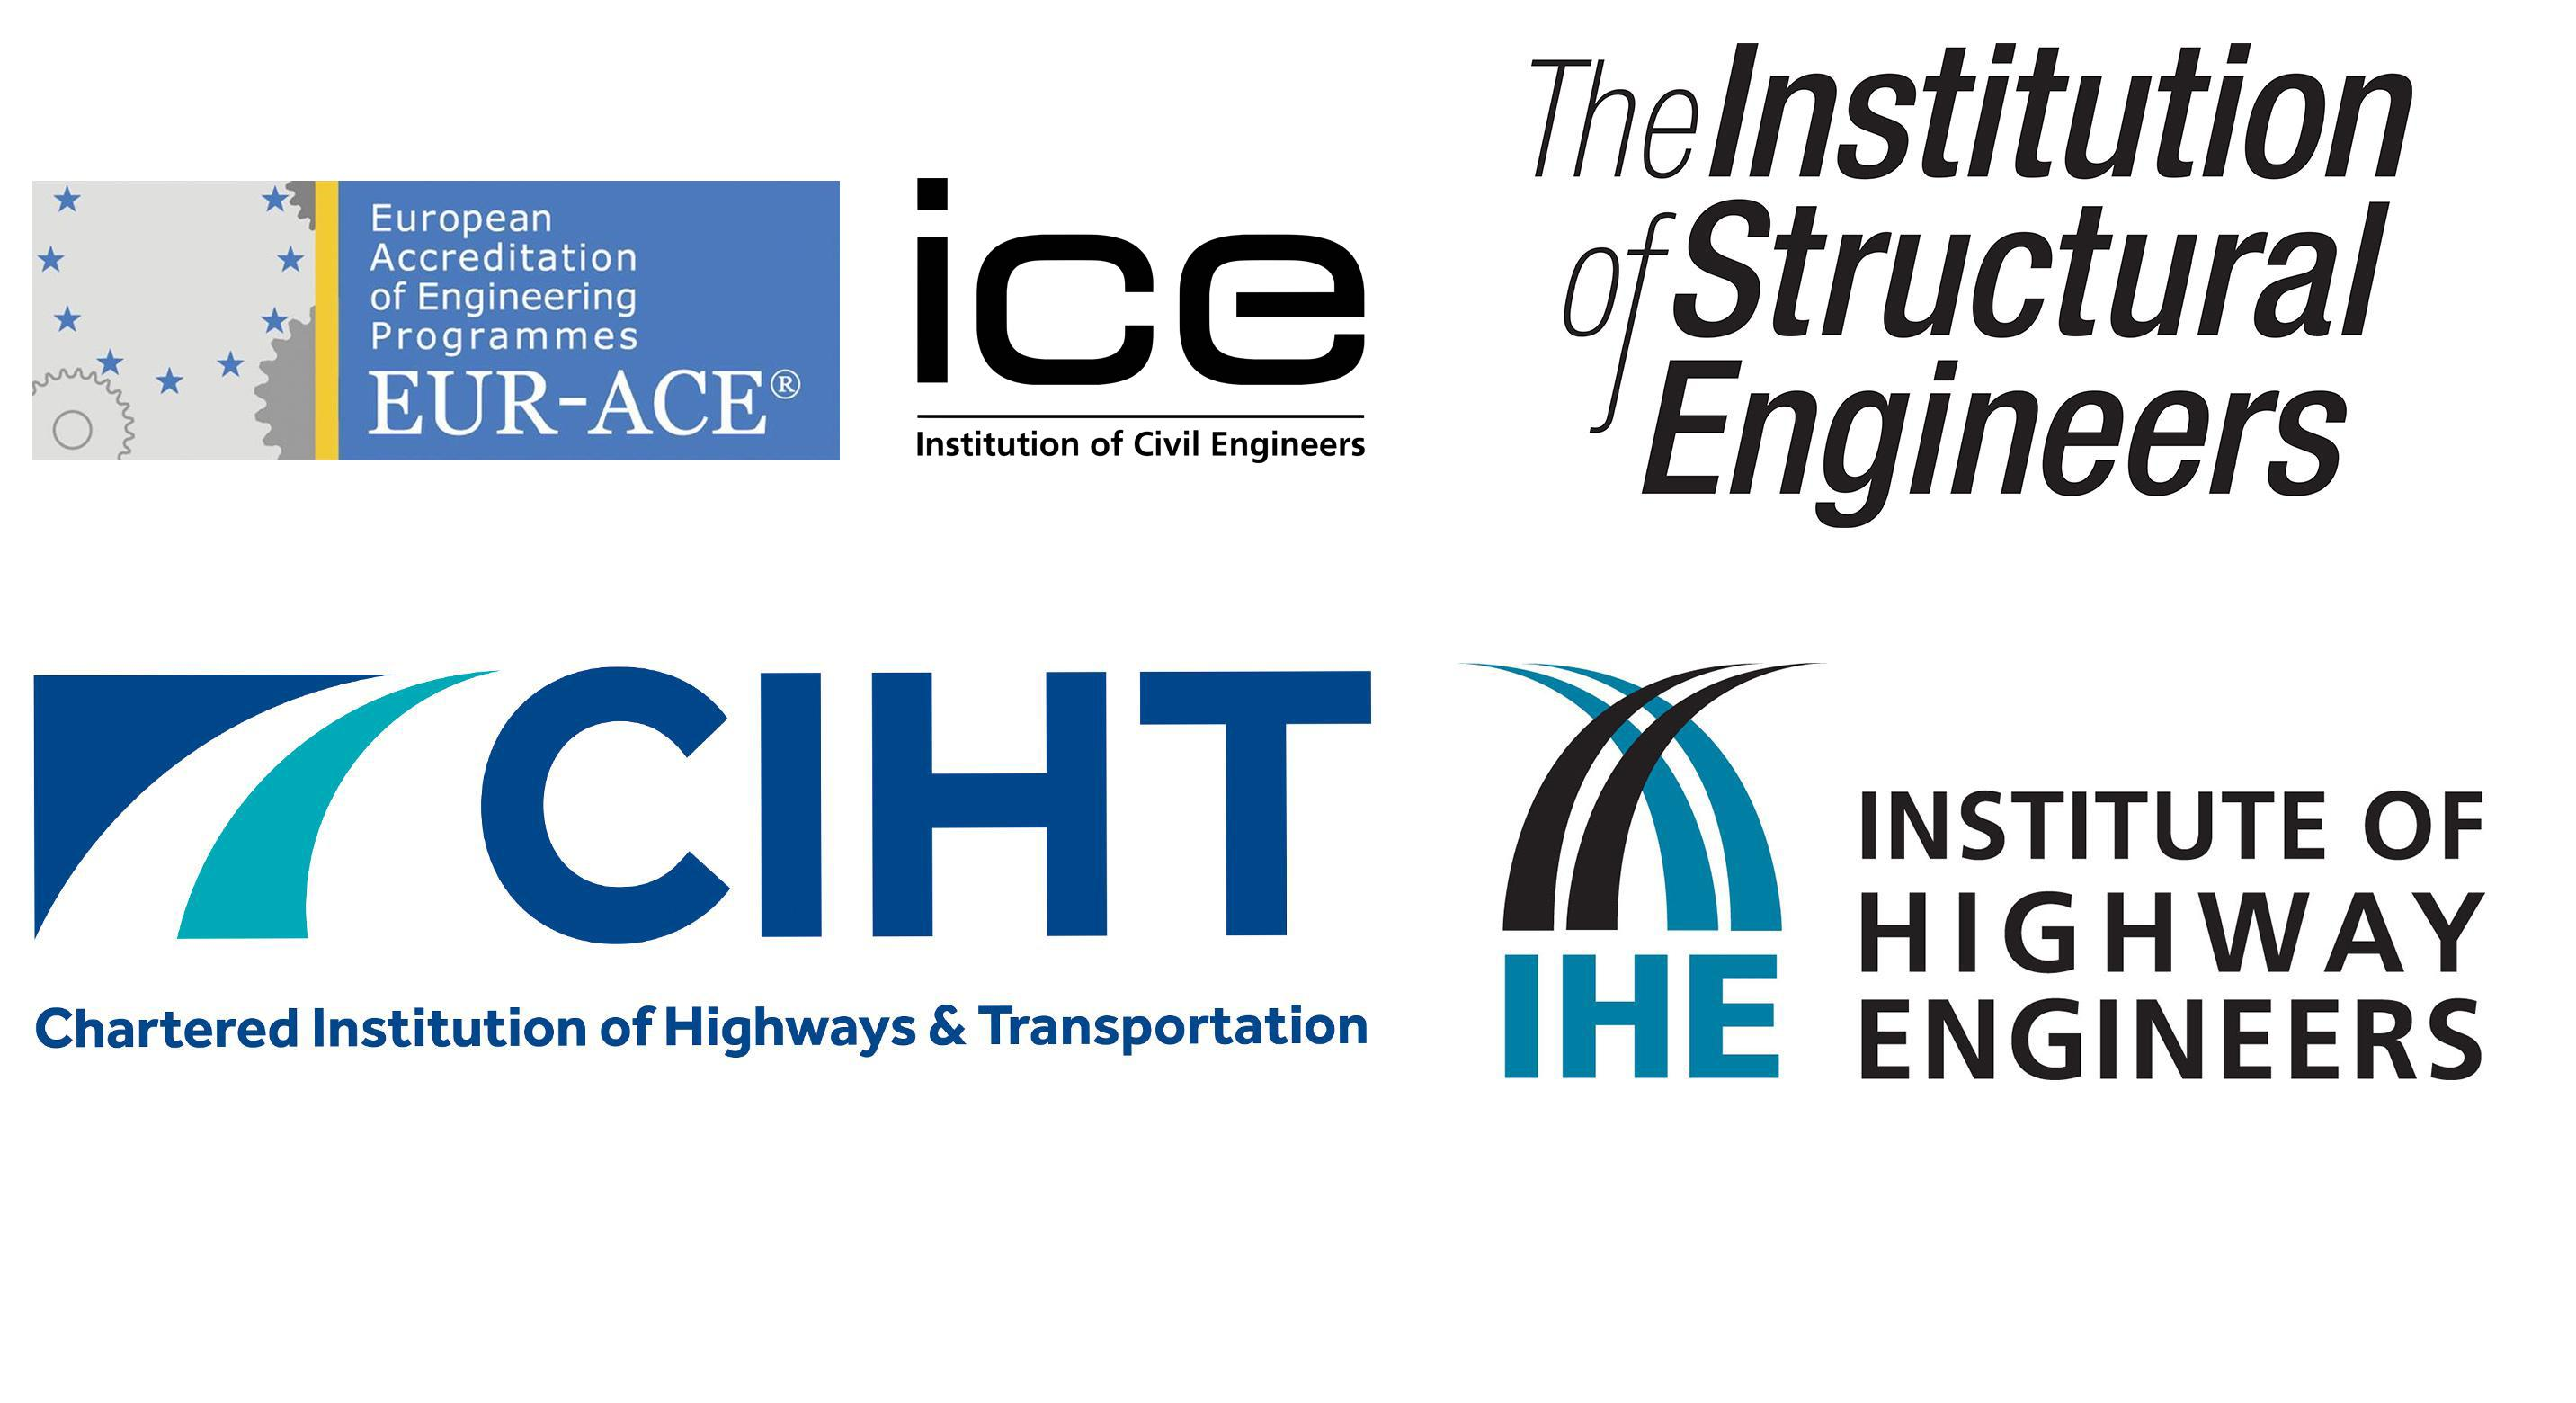 ICE, Institution of Structural Engineers, CIHT, Institute of Highway Engineers